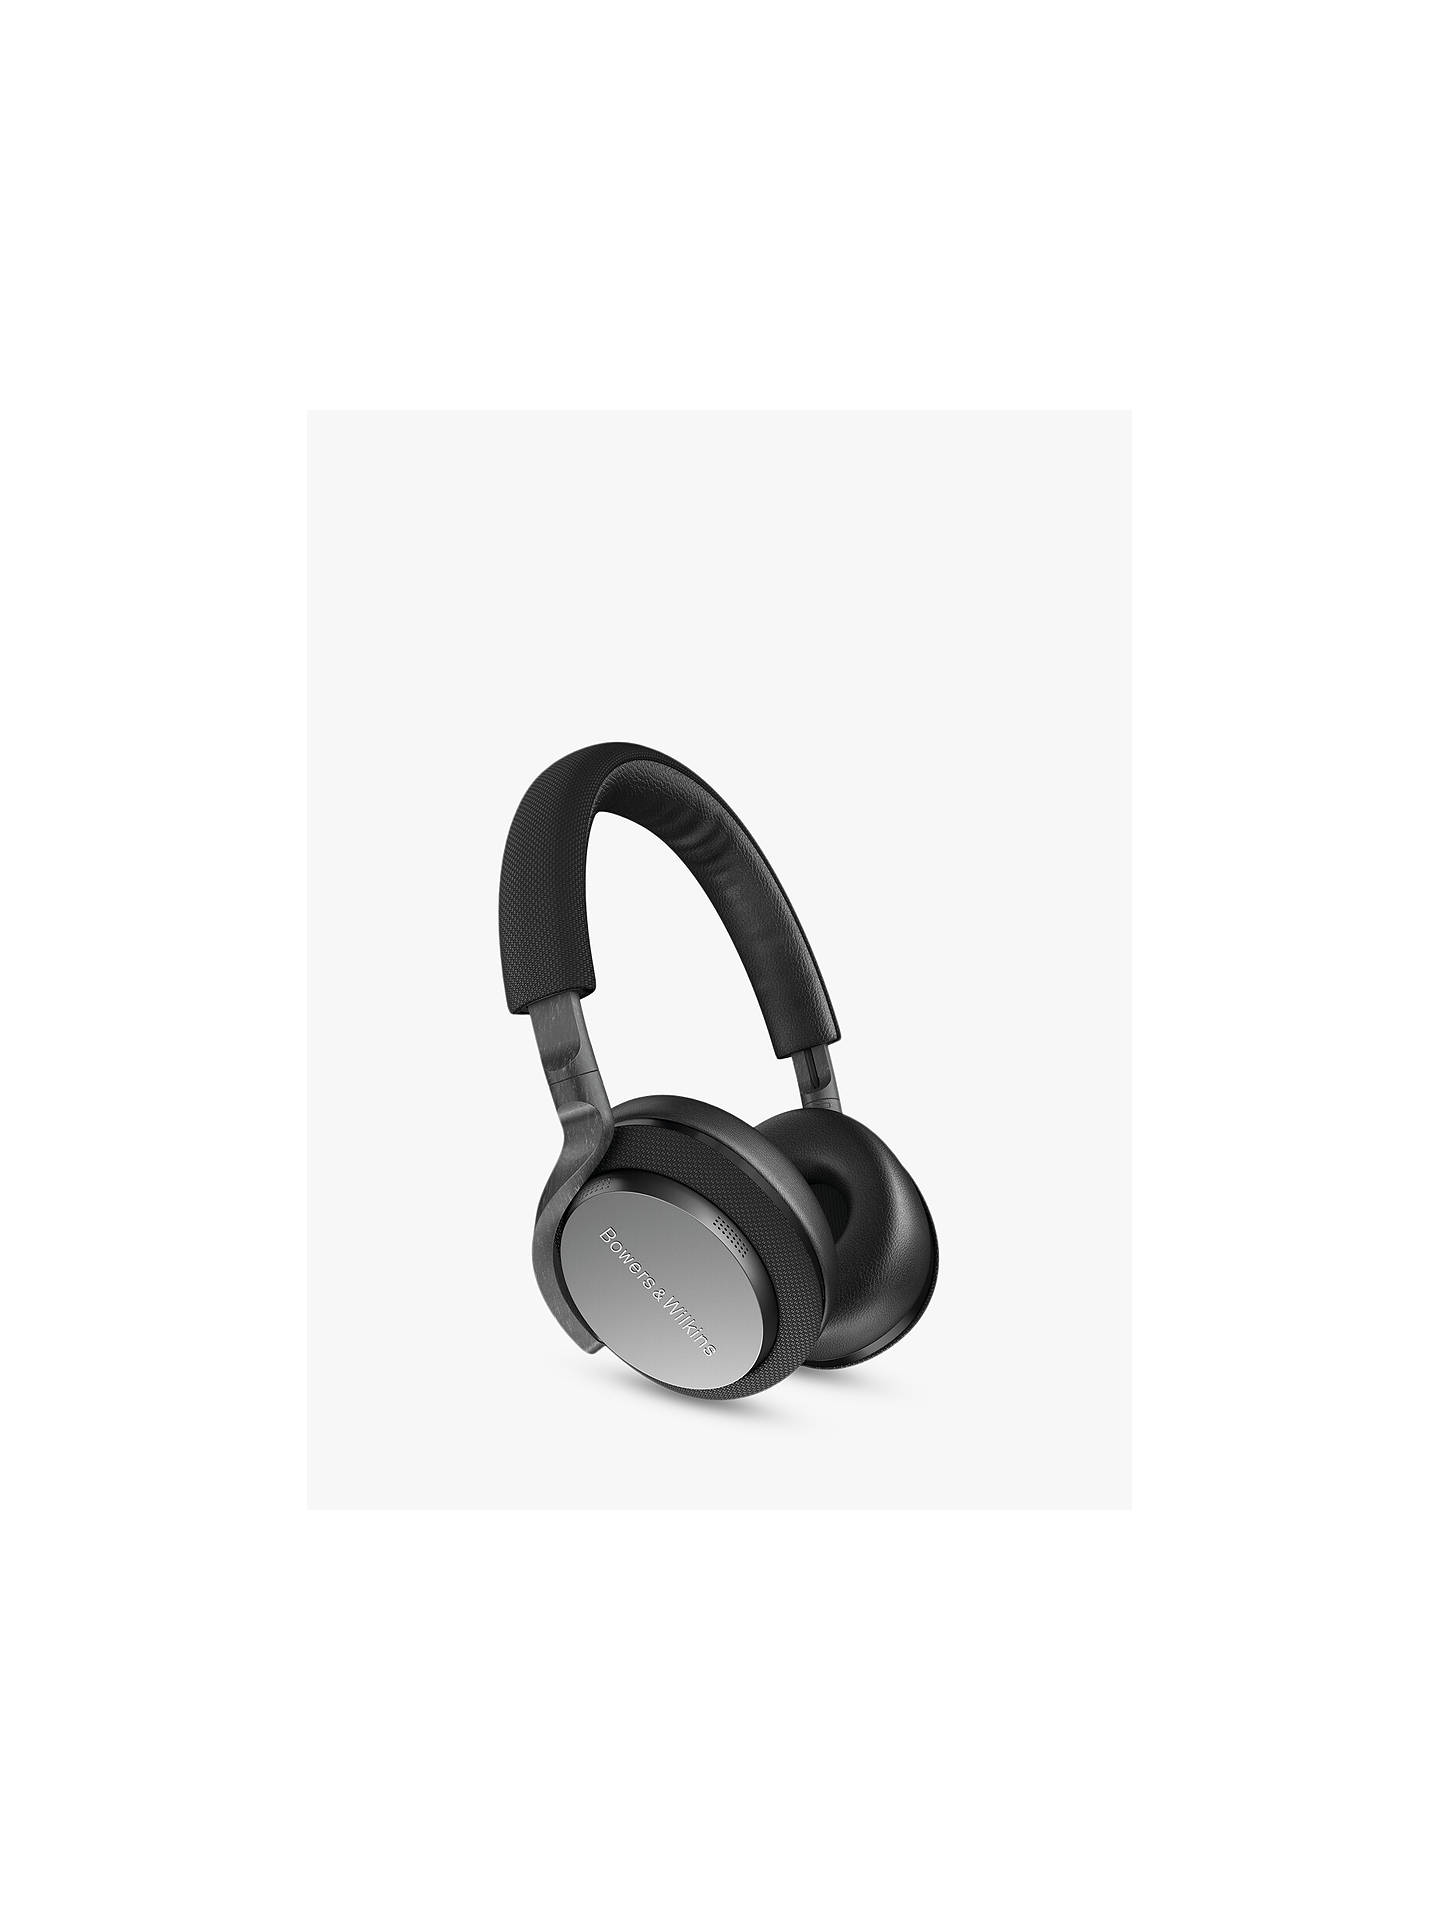 Buy Bowers & Wilkins PX5 Noise Cancelling Wireless On Ear Headphones, Space Grey Online at johnlewis.com